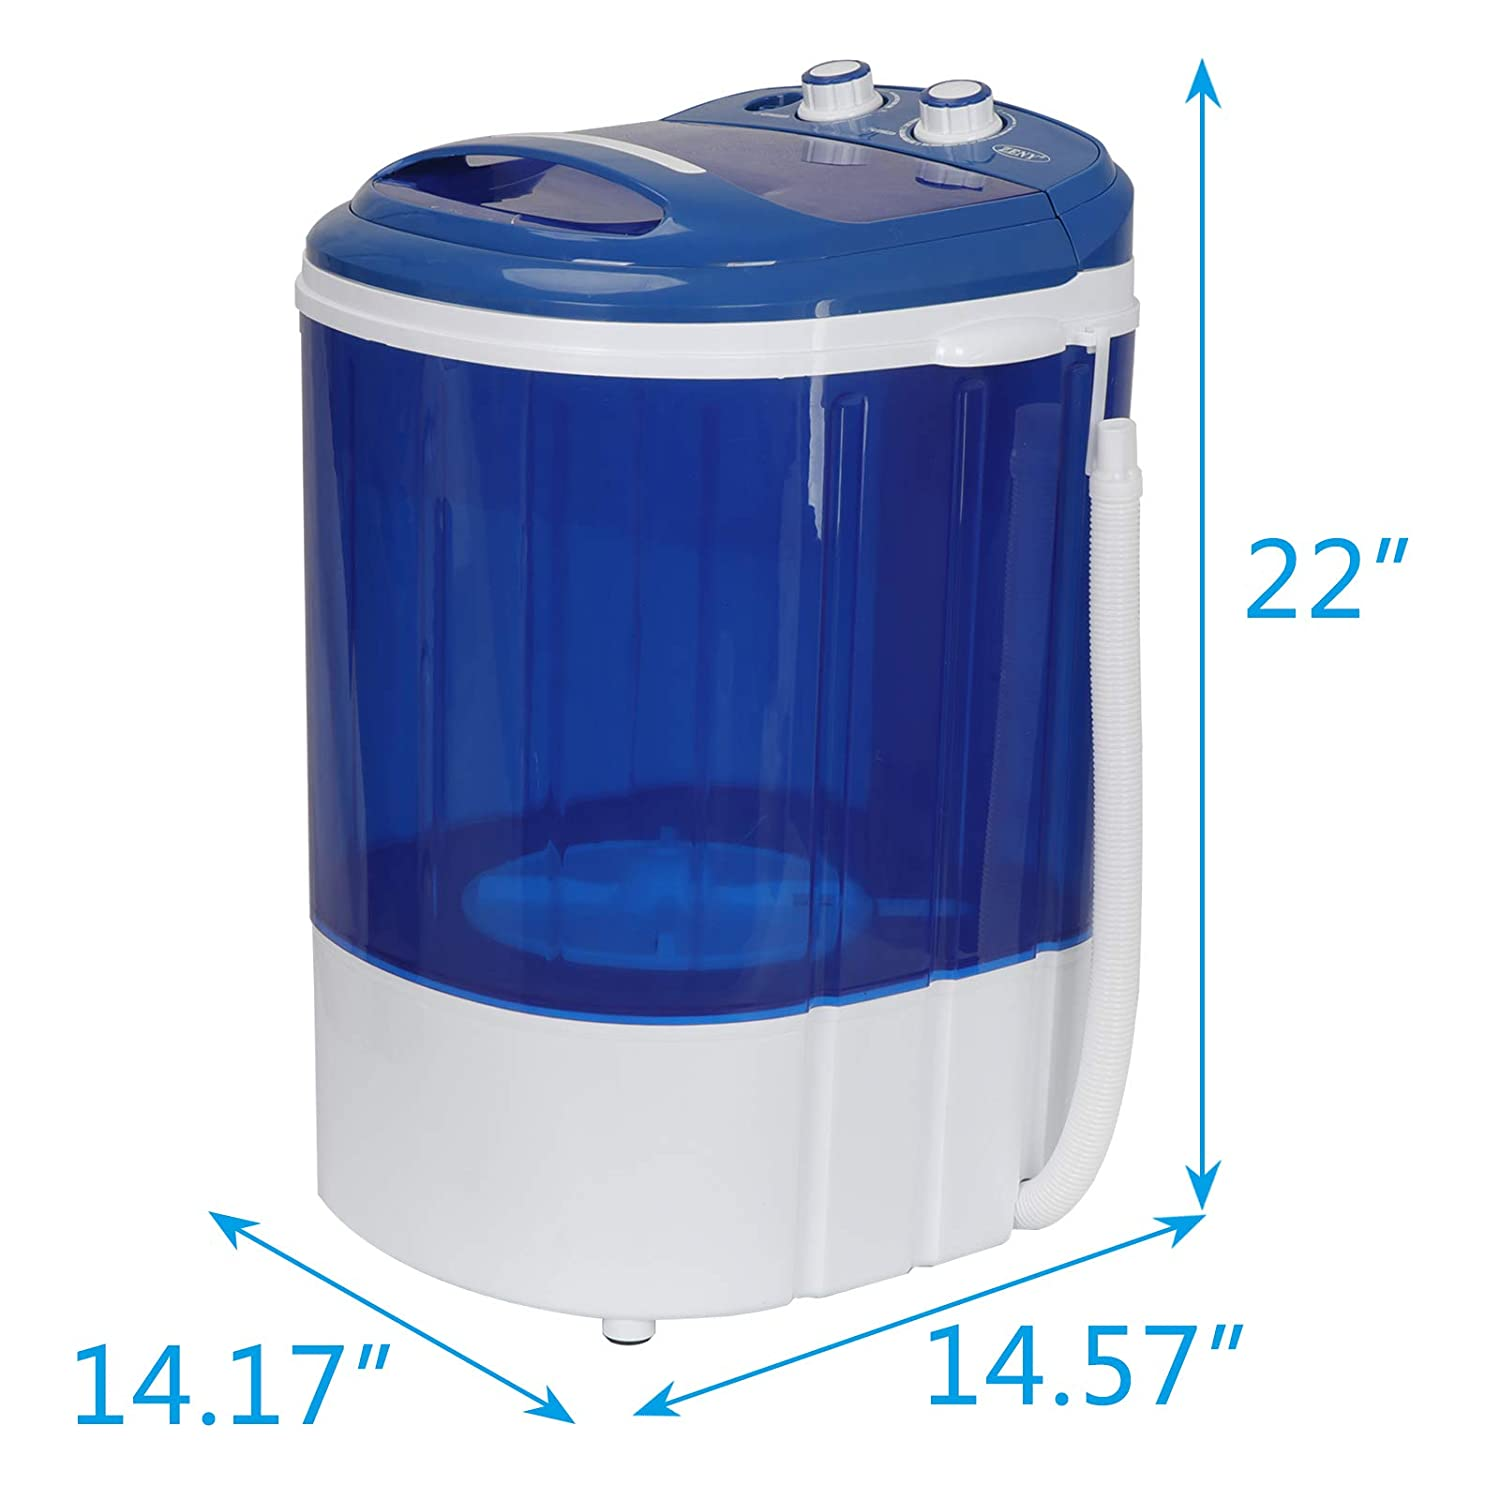 9lbs Portable Washer for Compact Laundry Semi-Automatic Compact Washer /& Spinner Mini Washing Machine